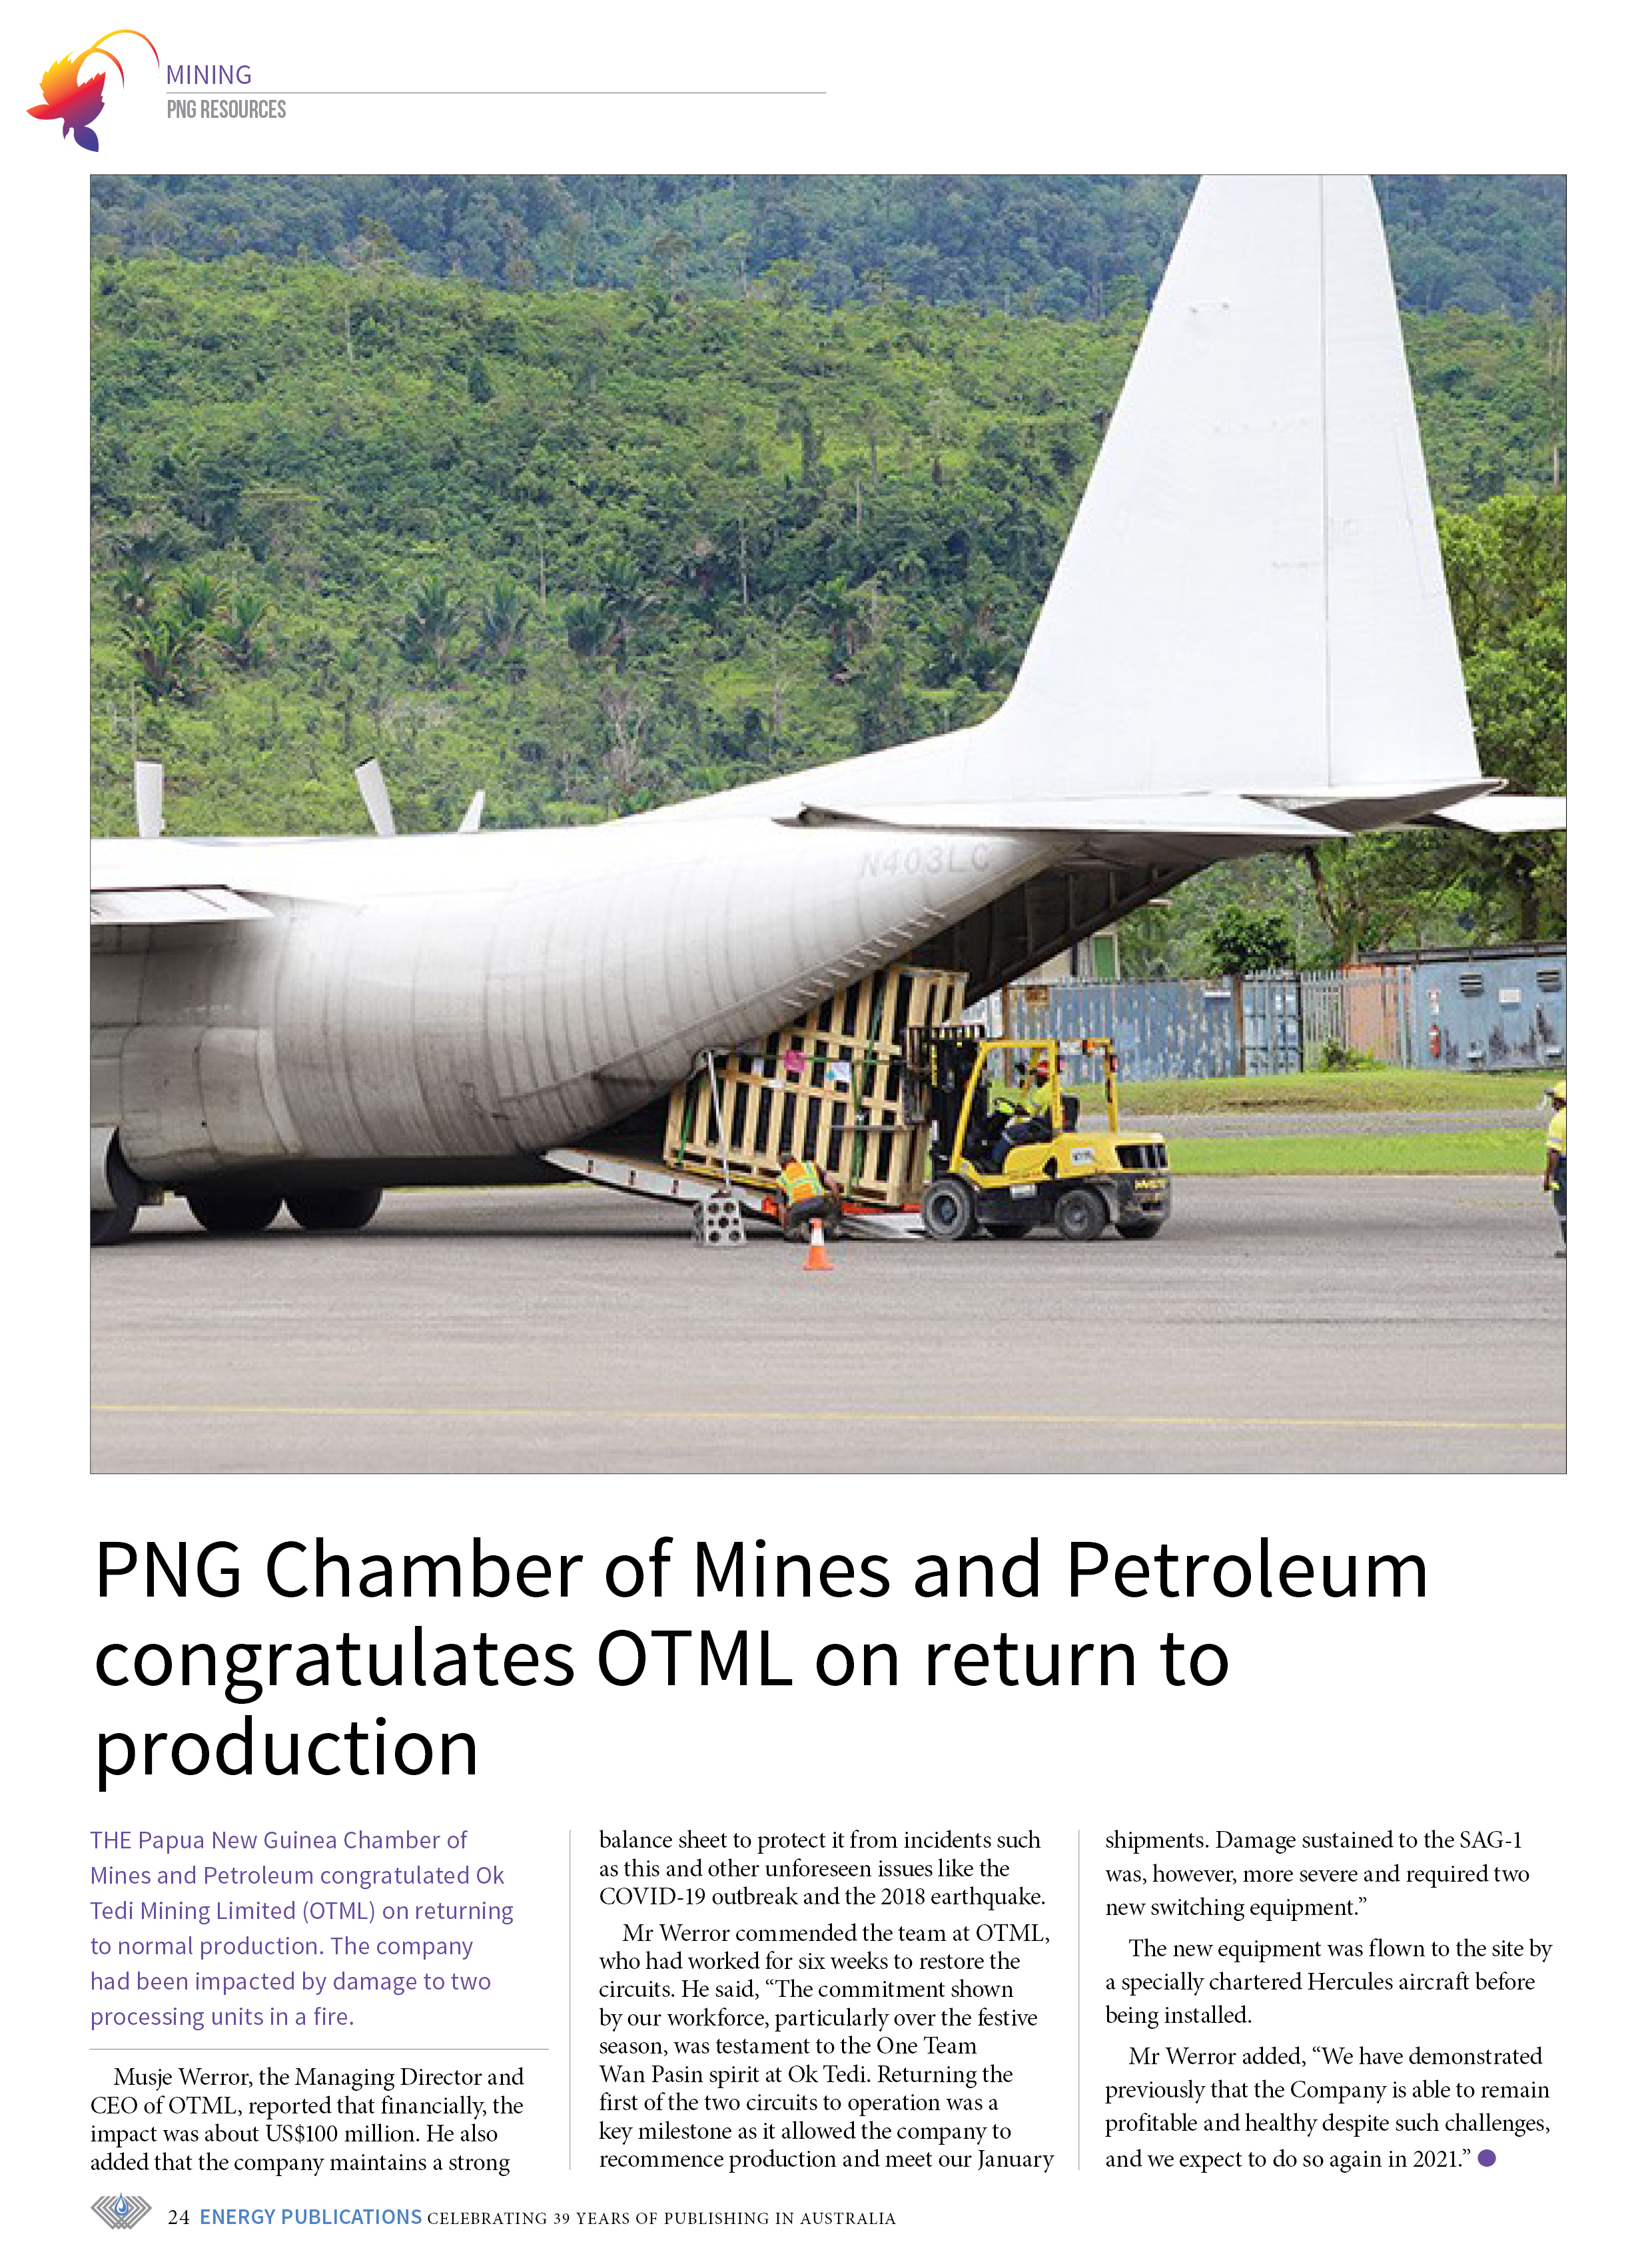 PNG Resources Q1 2021 – Page 26